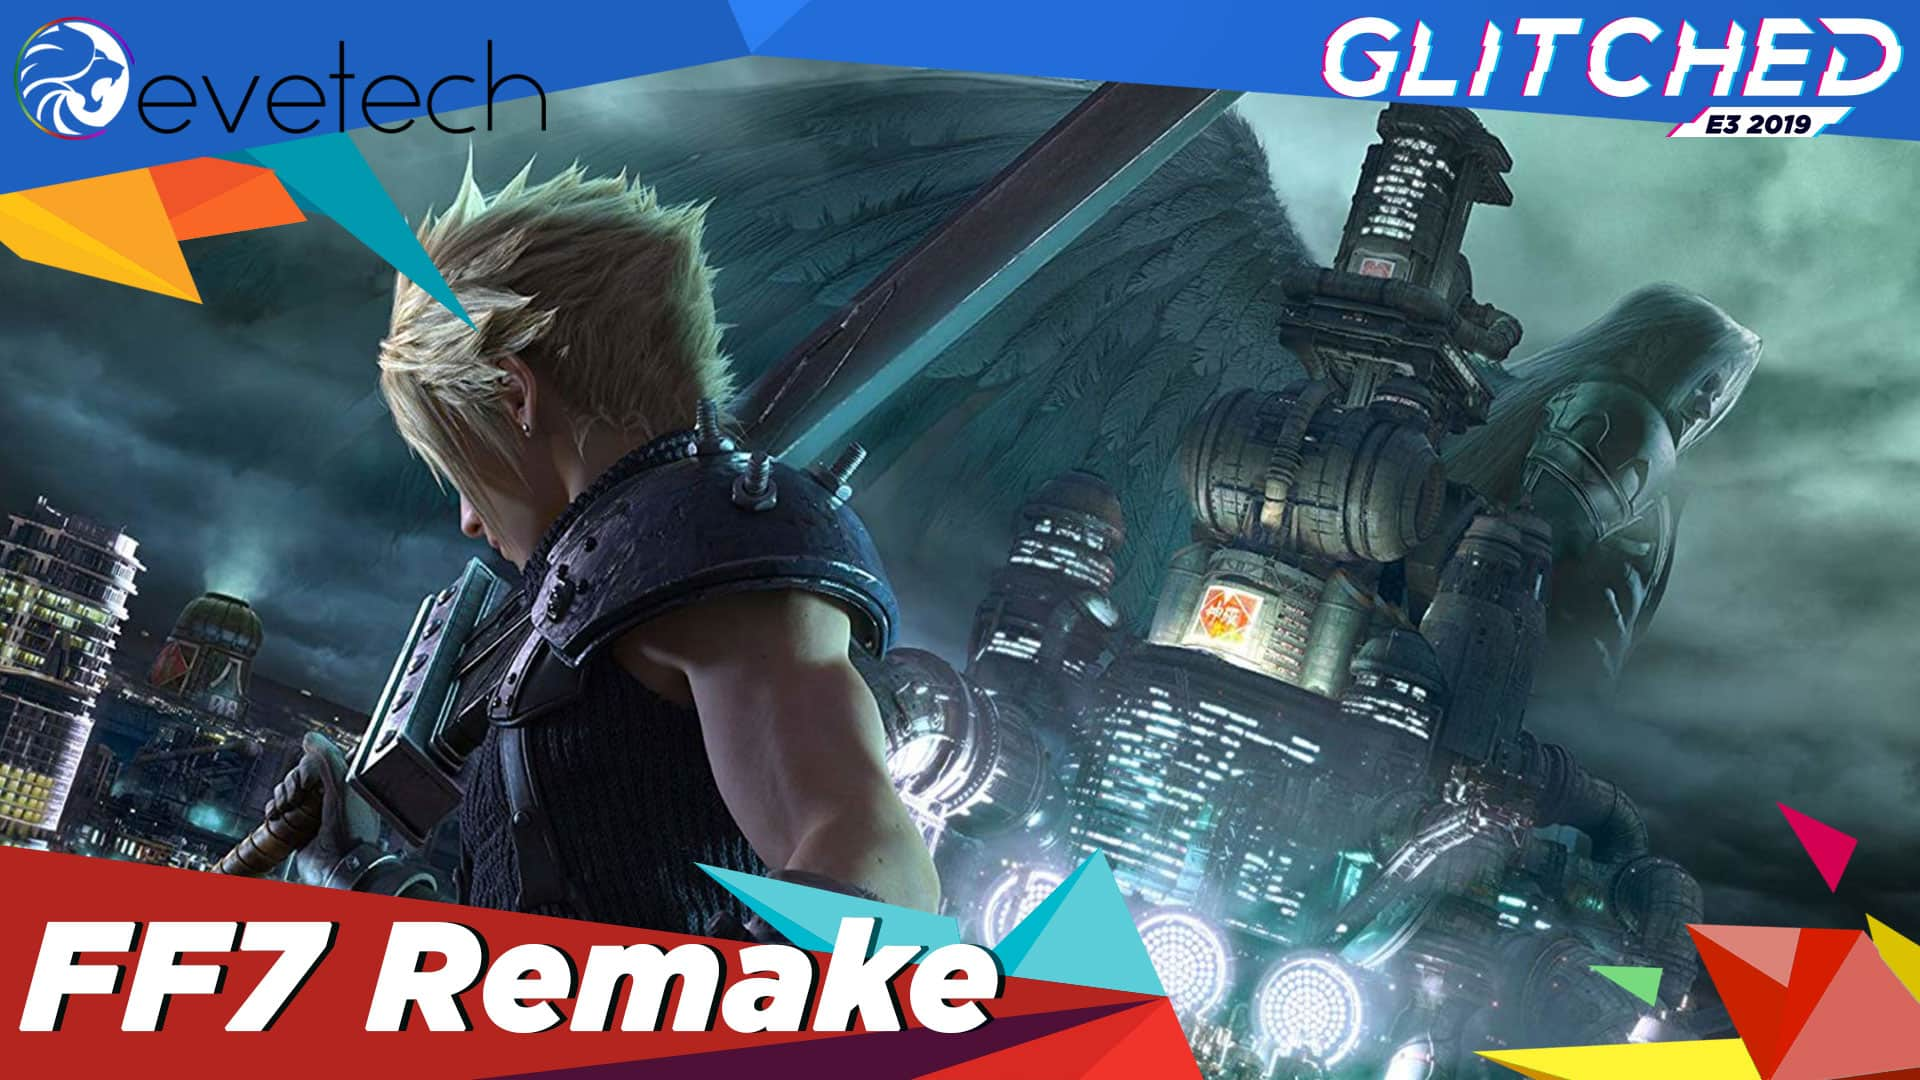 Final Fantasy 7 Remake Release Date